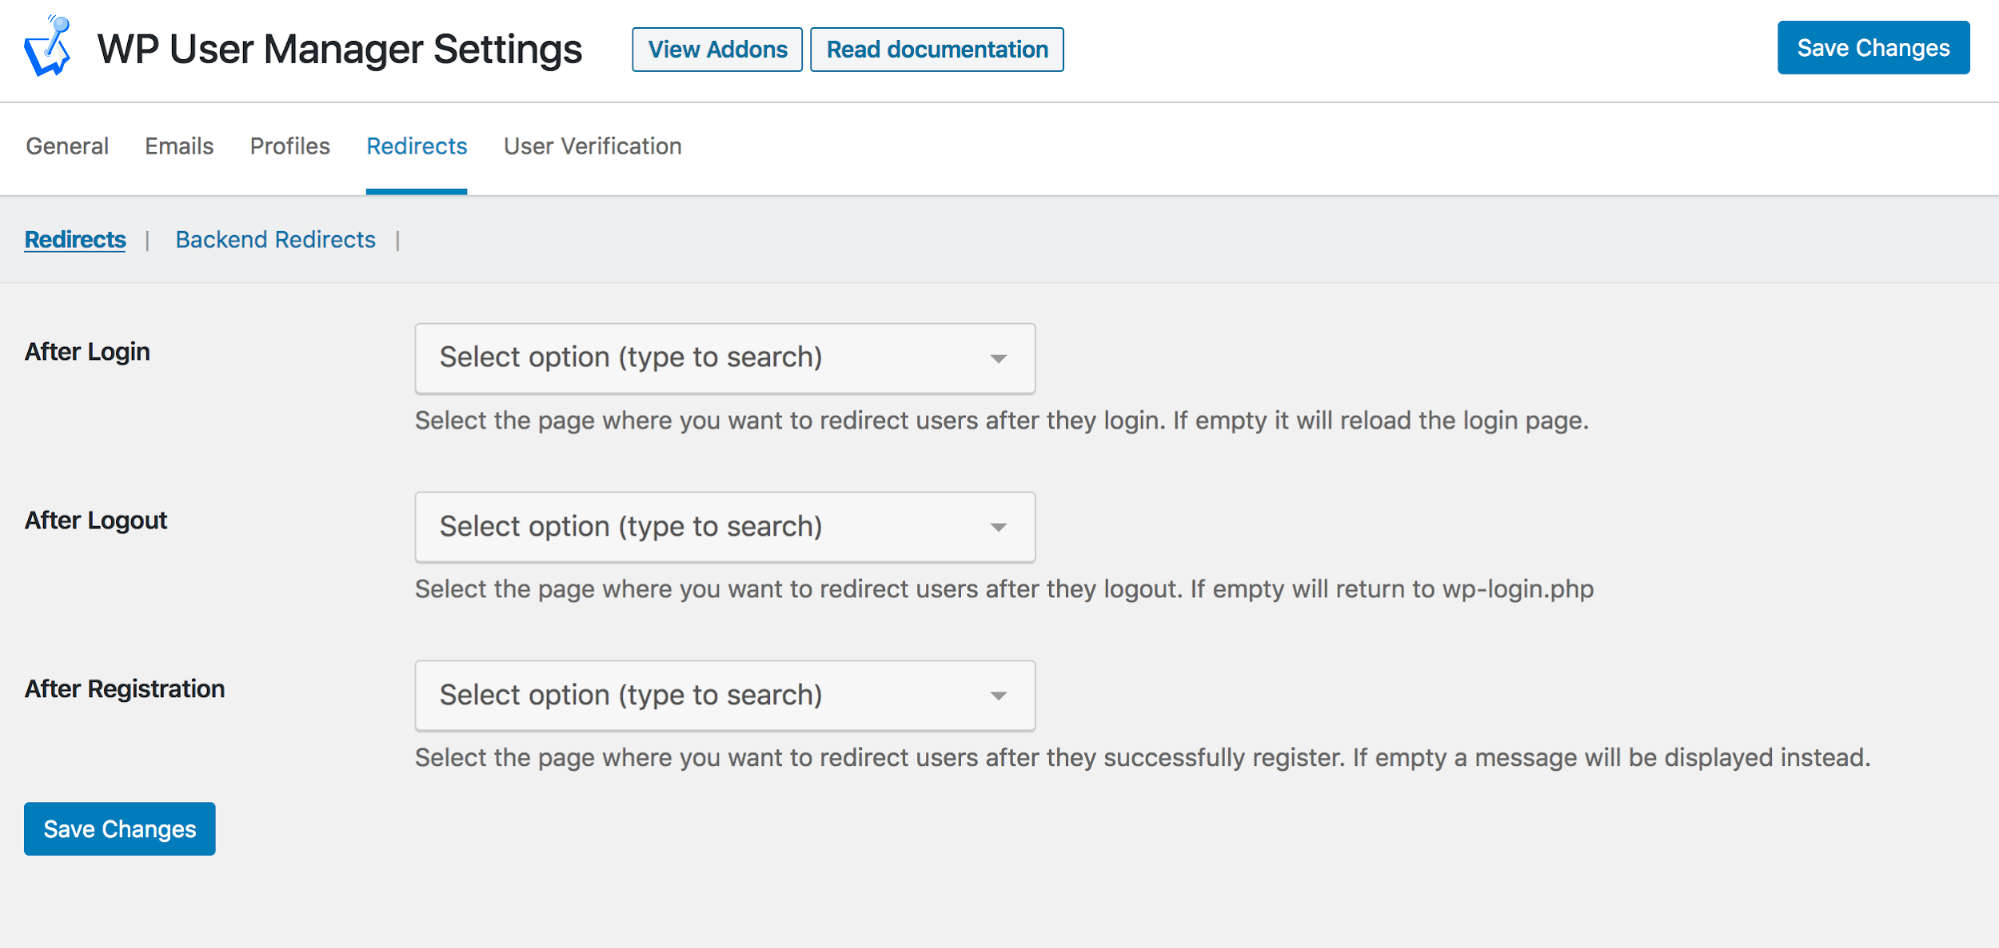 WP User Manager Redirects Settings